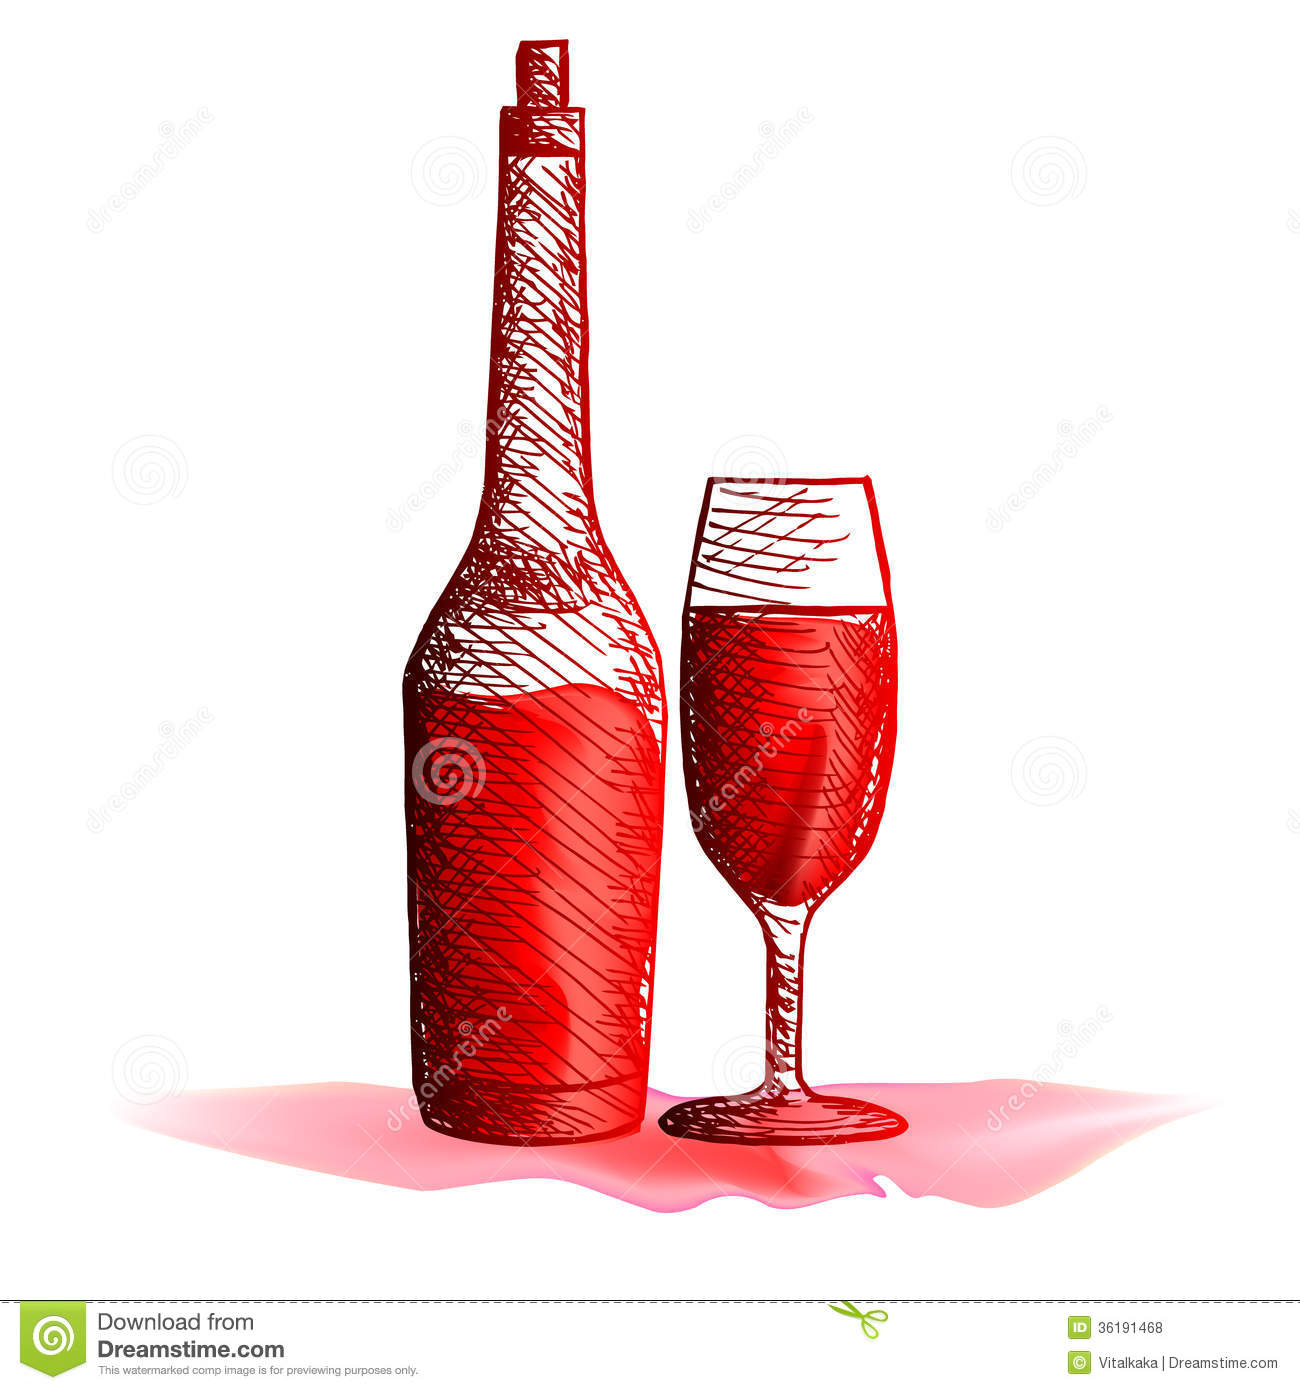 Glass Bottle And Glass With Wine Royalty Free Stock Photos ...